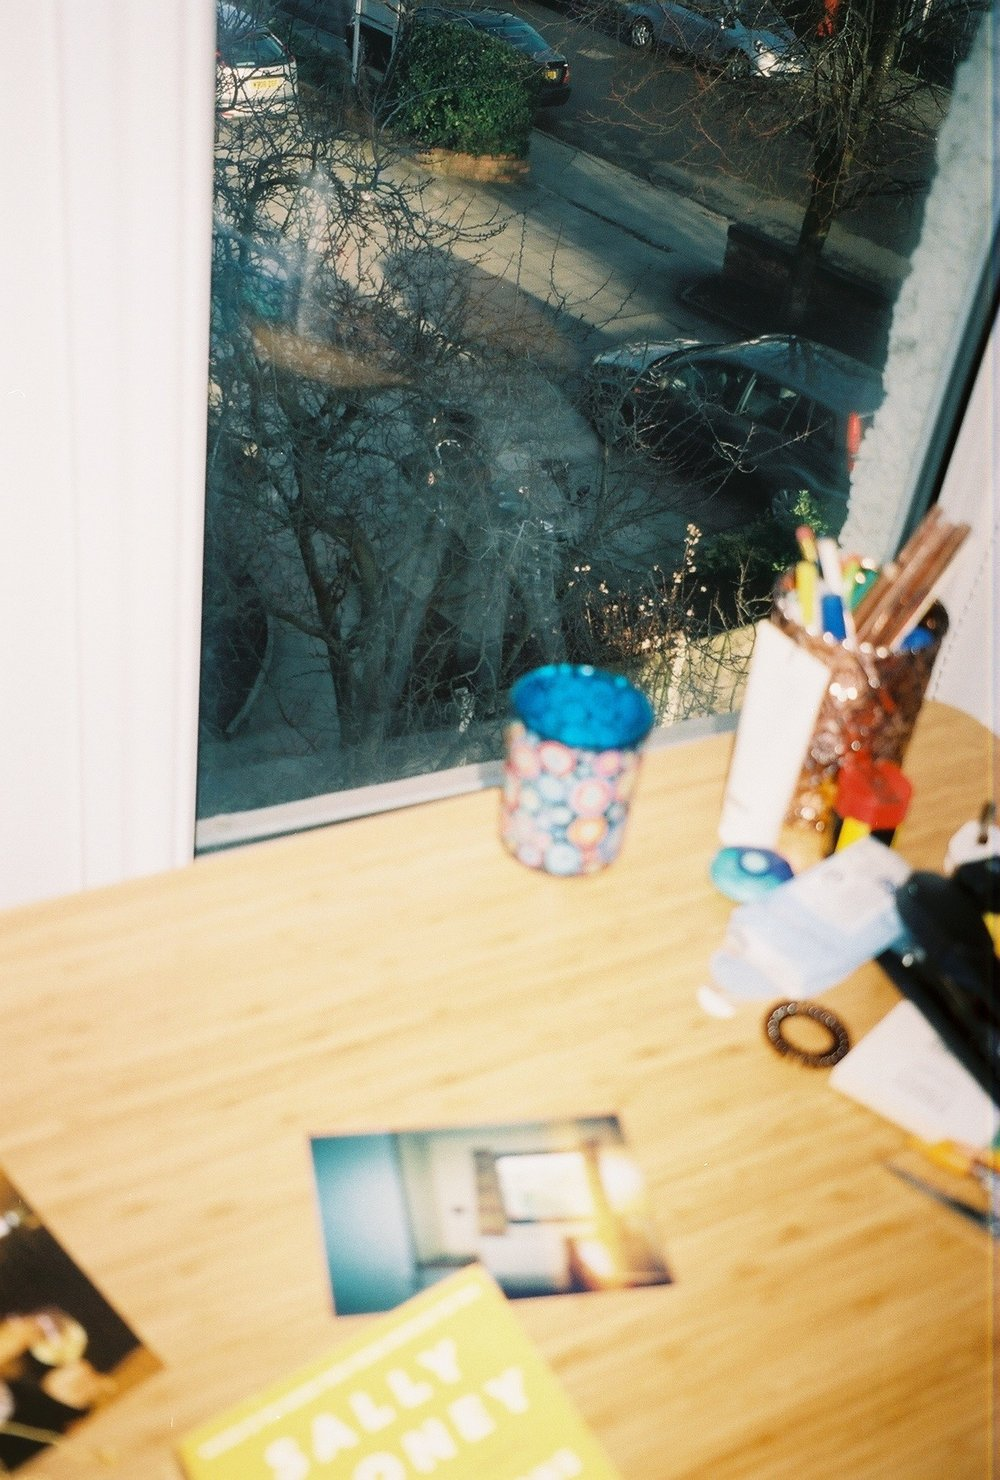 My Life on Film Photography #2